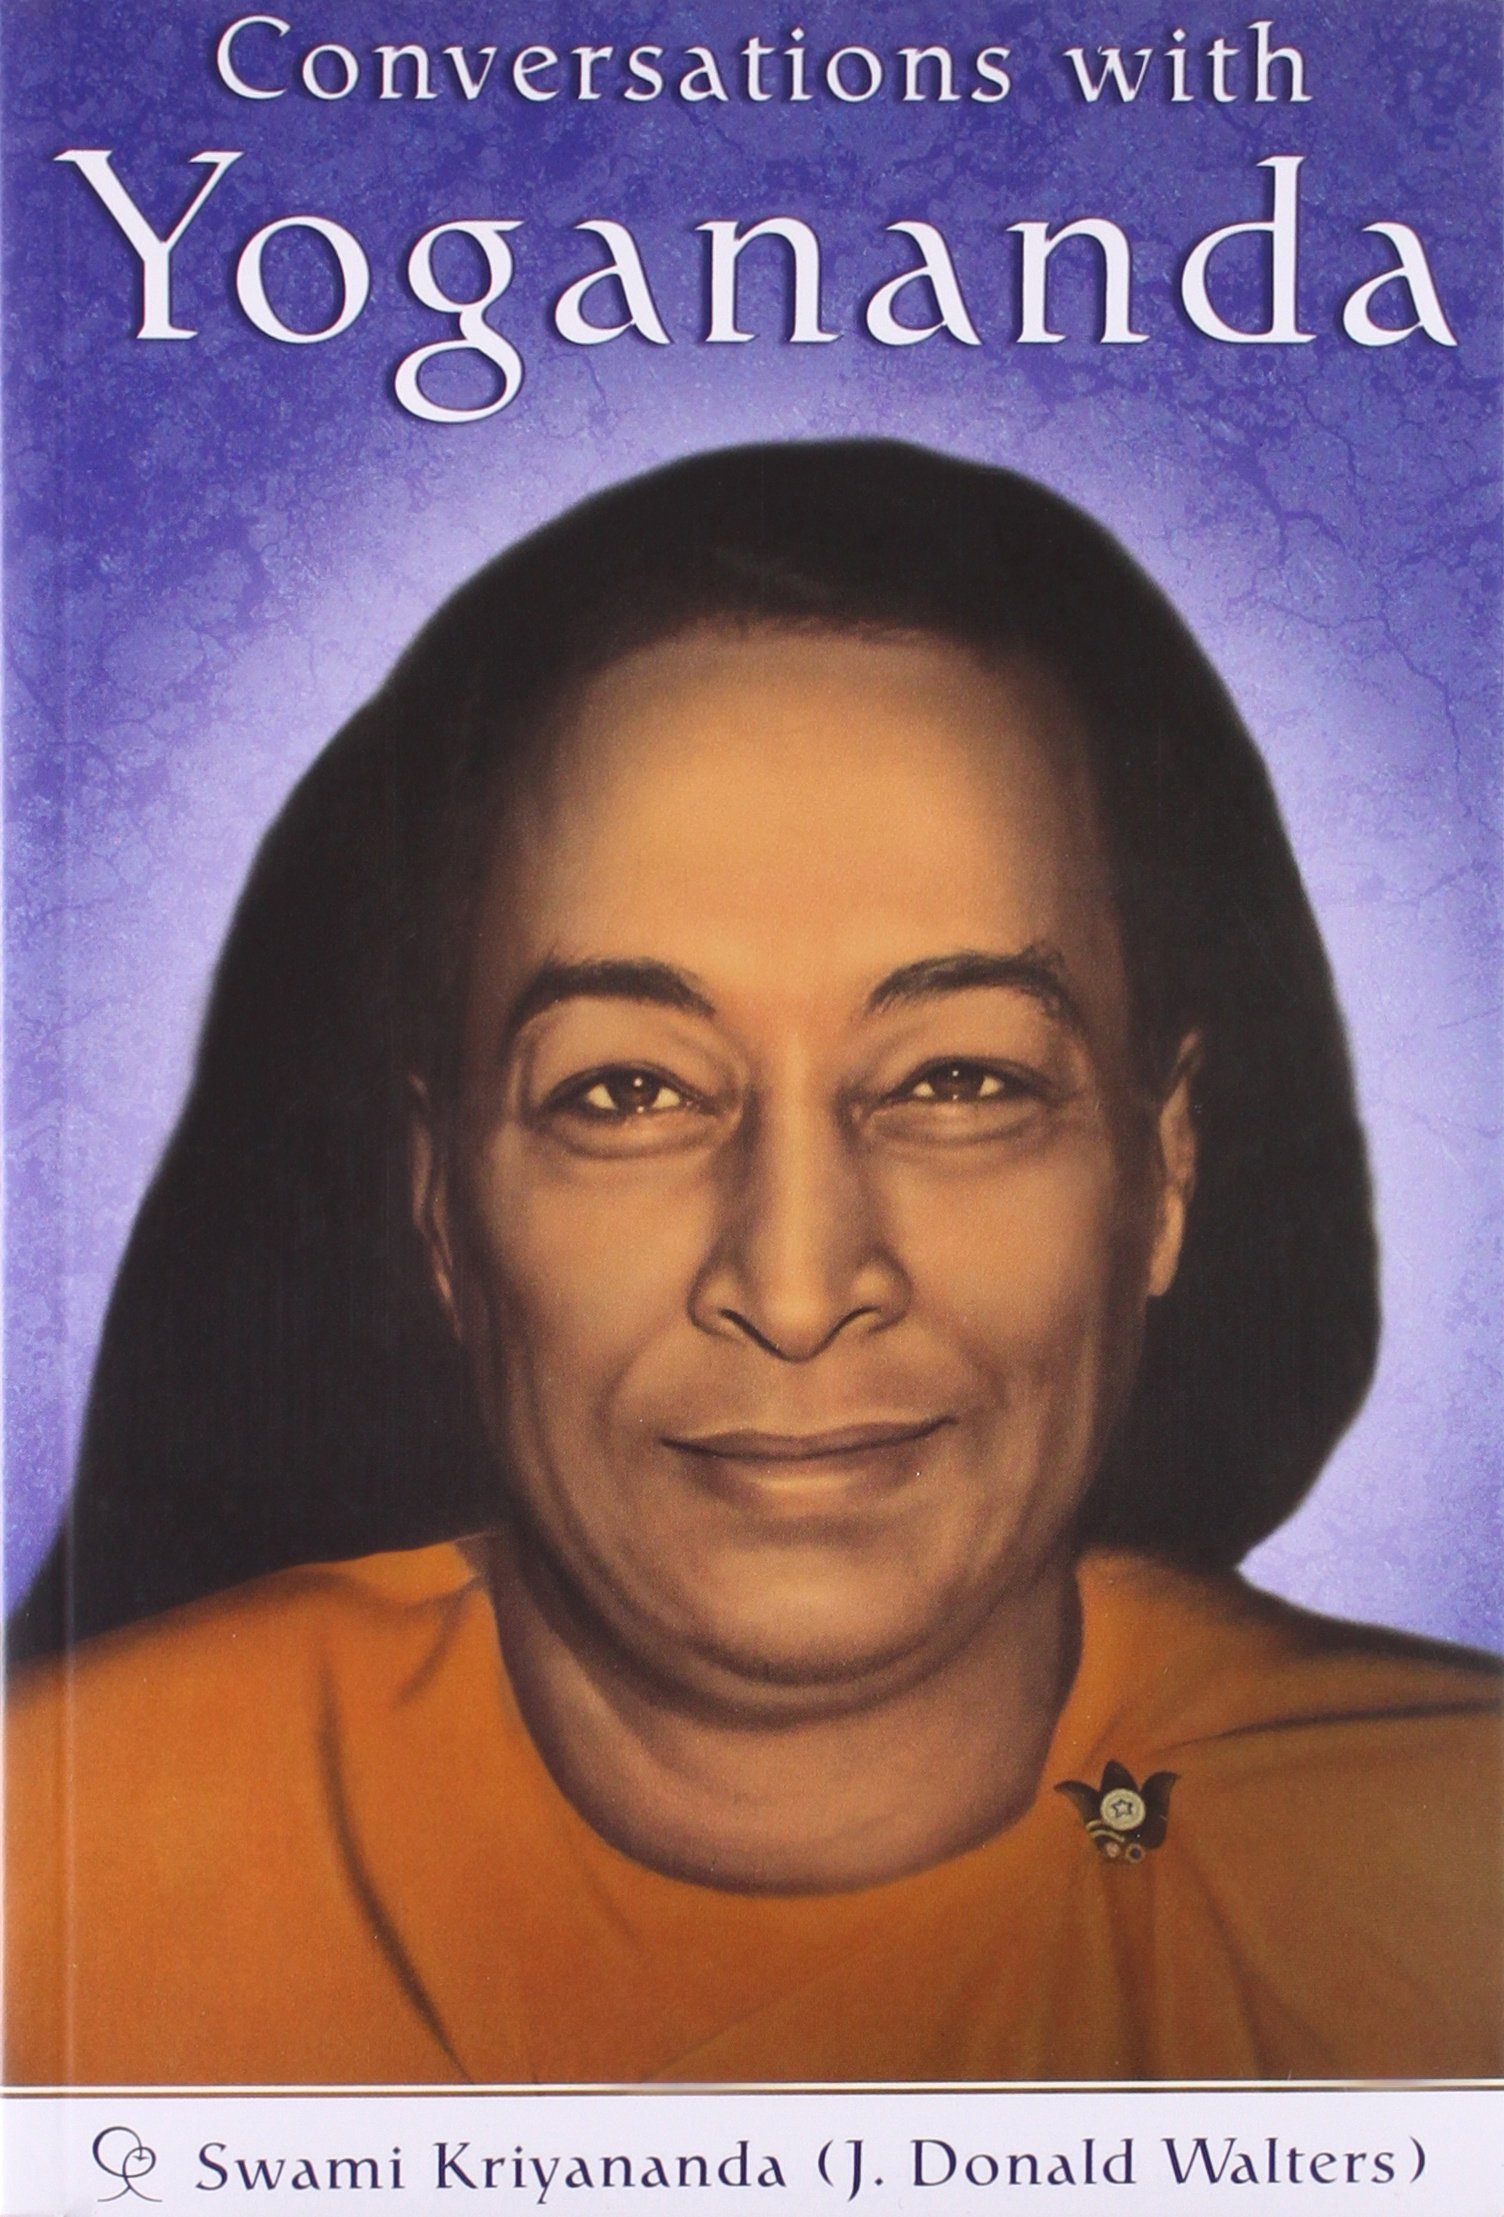 Conversations with Yogananda Podcast